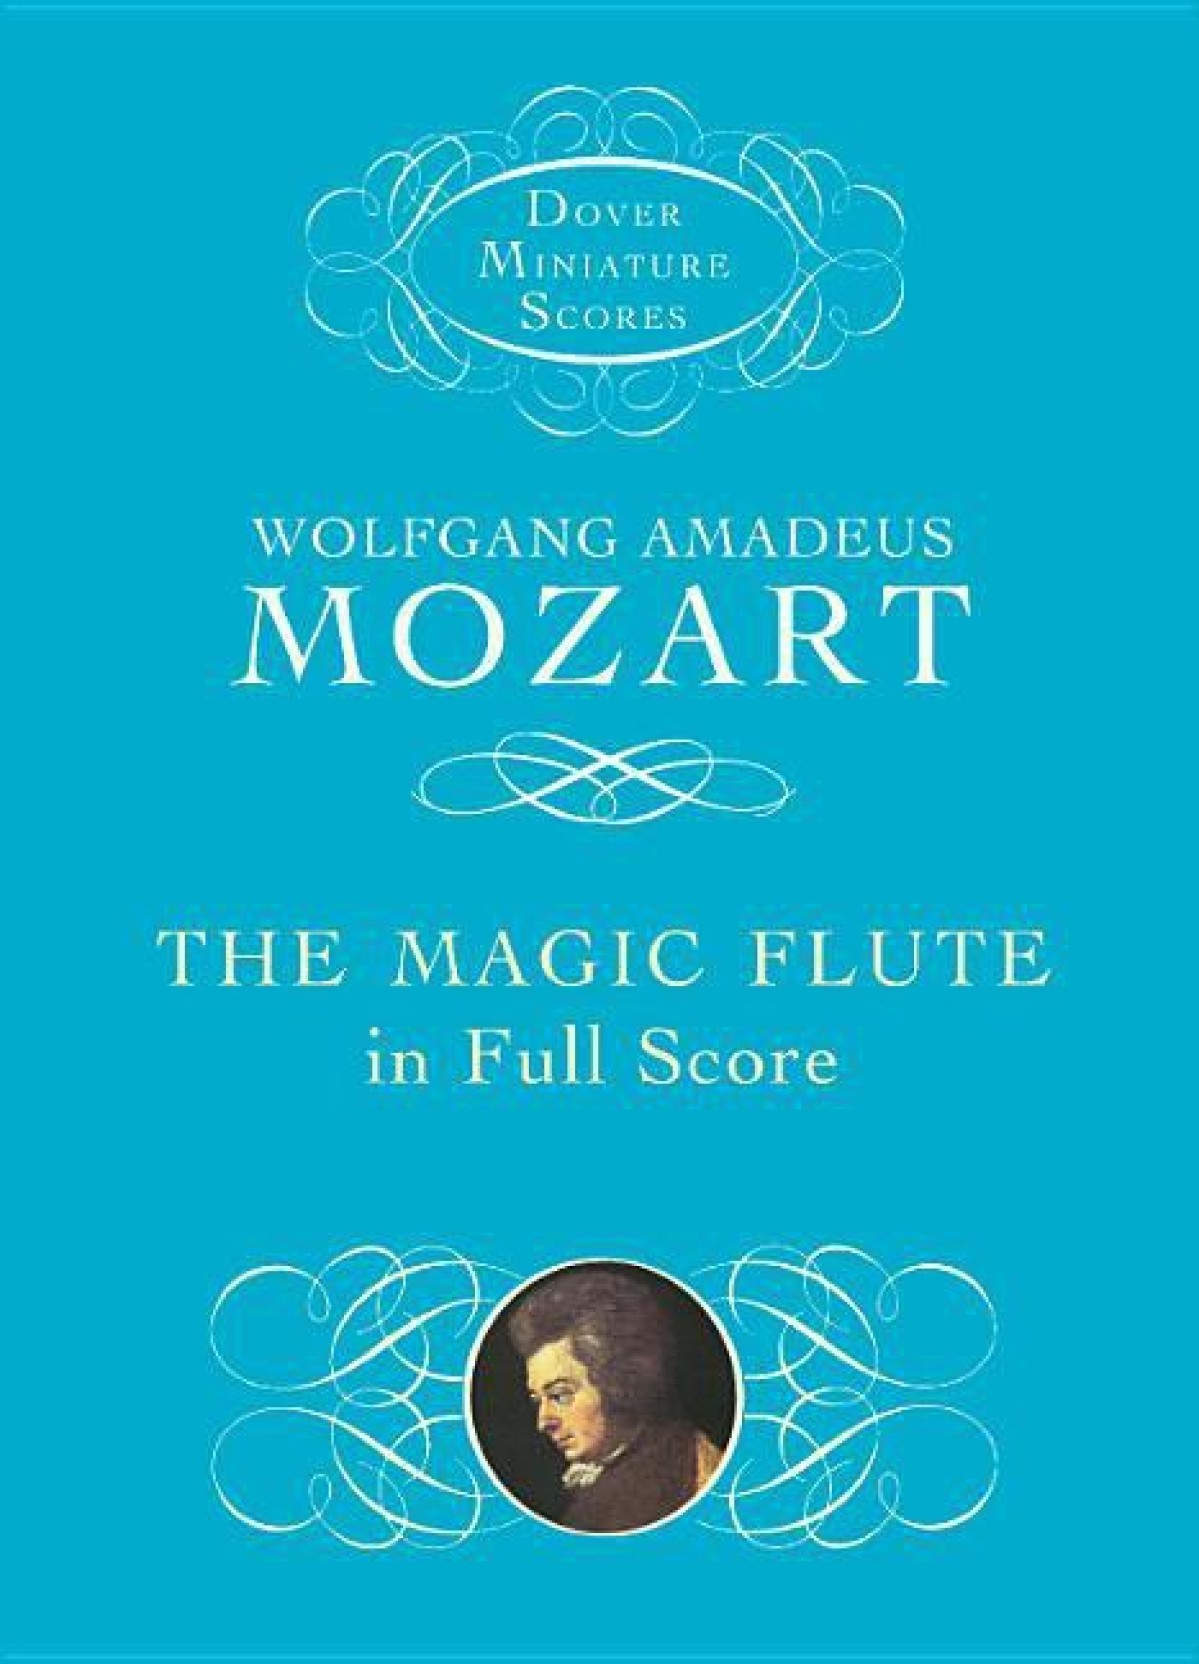 The Magic Flute in Full Score (Dover Miniature Scores). Share